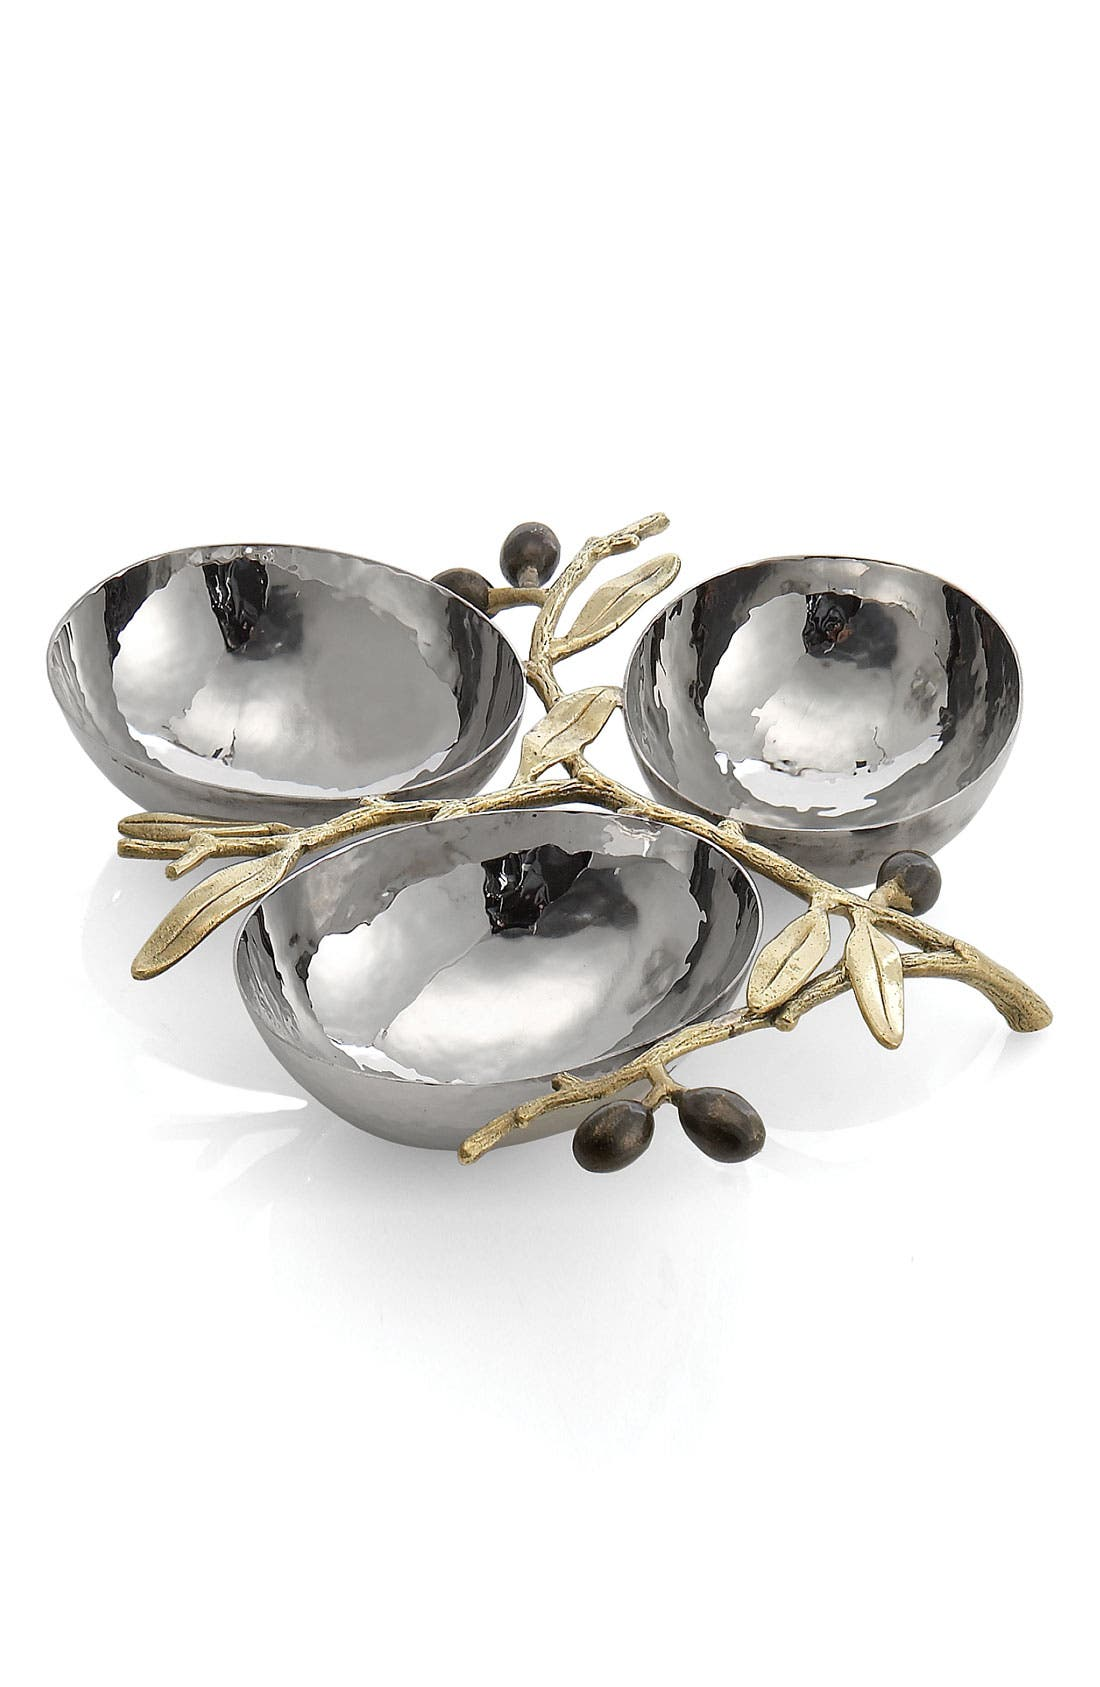 Main Image - Michael Aram 'Olive Branch Gold' Triple Dish